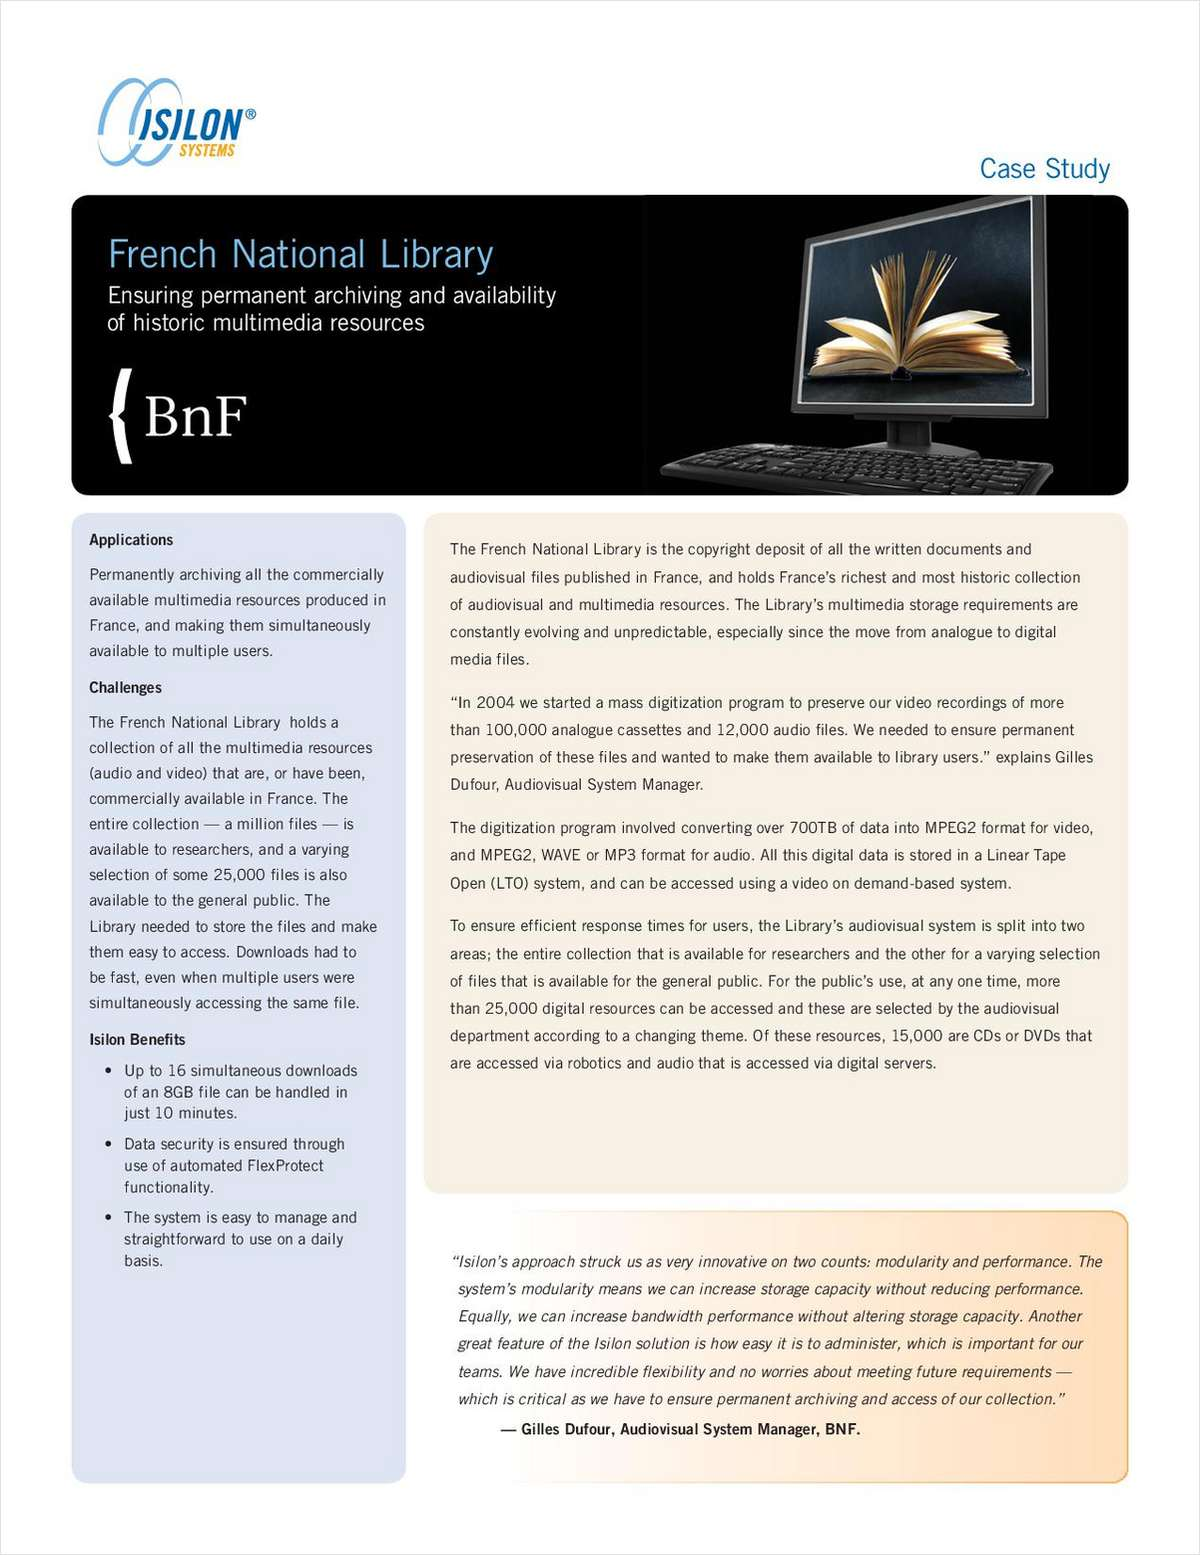 Isilon IQ Case Study: French National Library